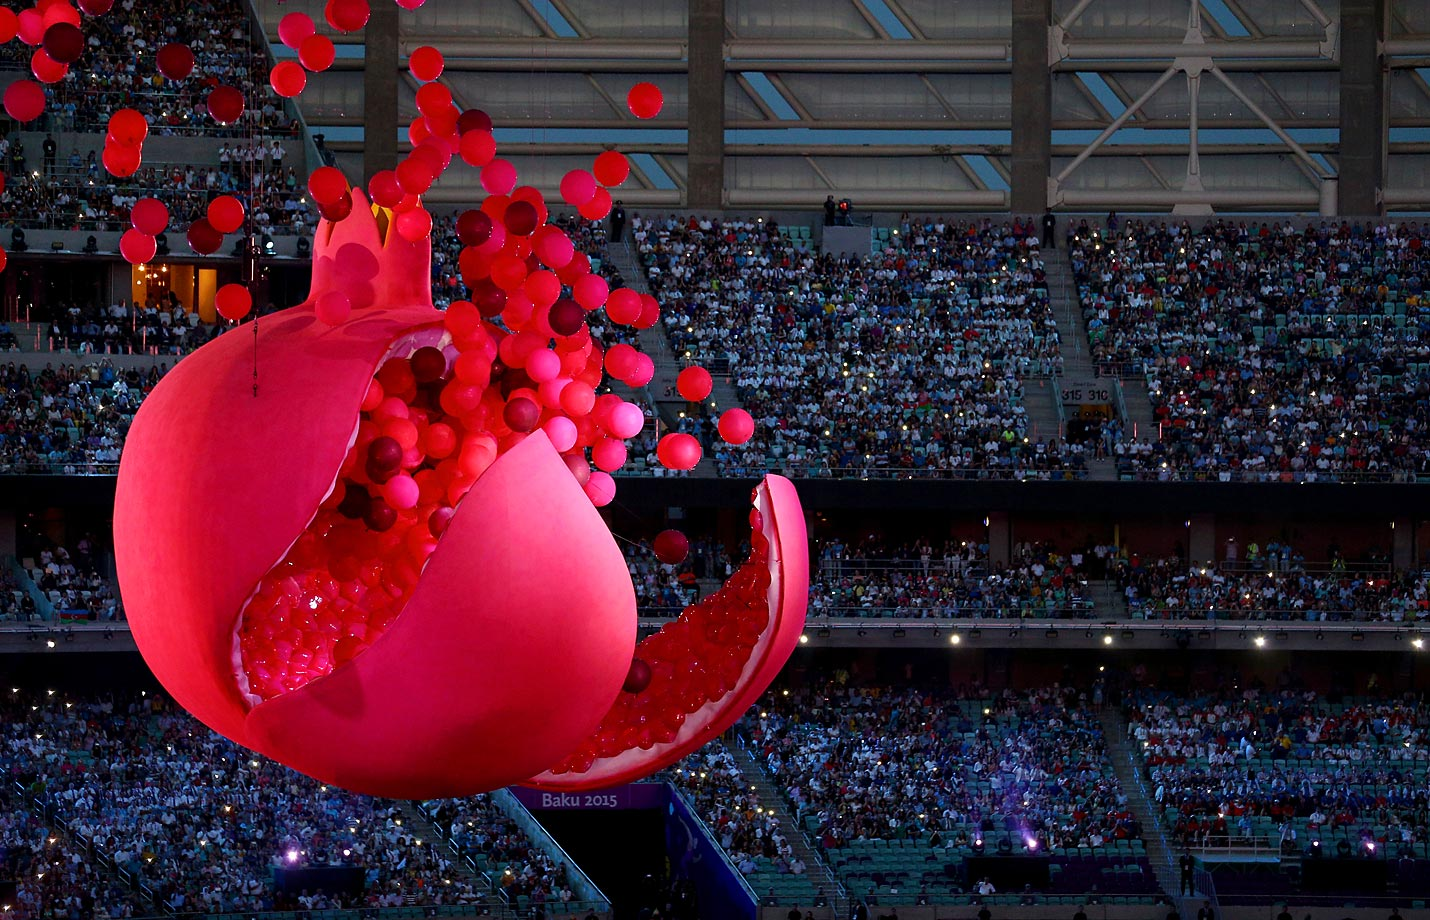 A giant Pomegranate representing abundance, rebirth, love and good luck splits open to release its seeds during the Opening Ceremony for the Baku 2015 European Games.